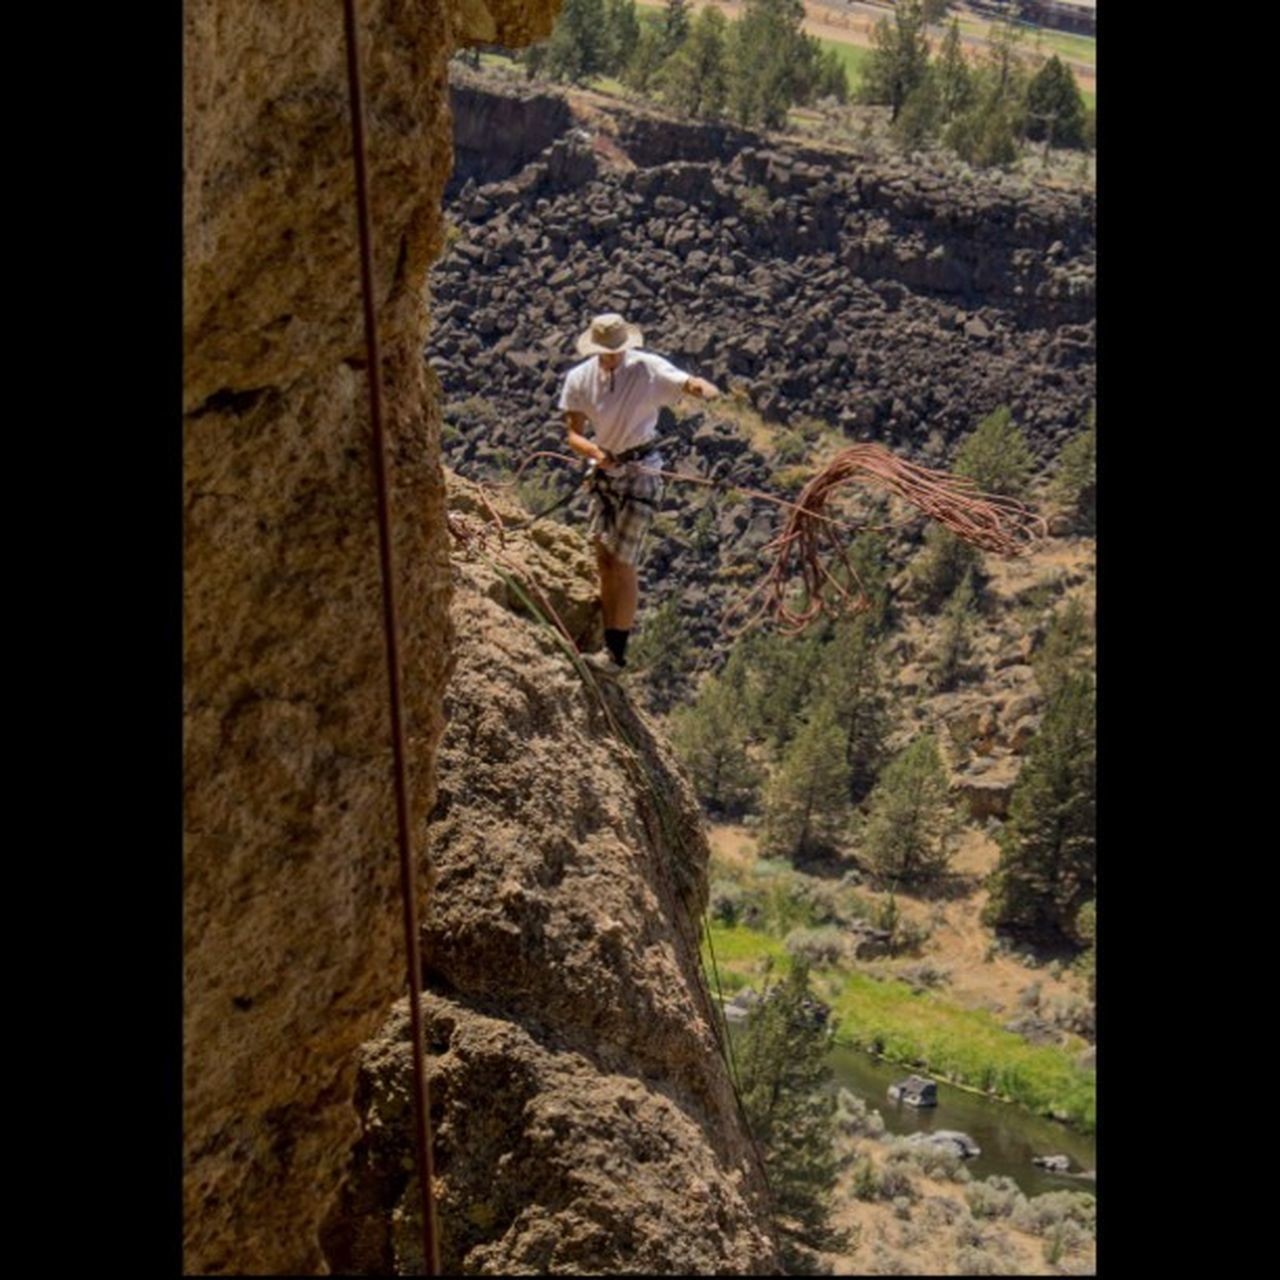 Canon_photos Natgeotravel Smithrock Your_daily_photo RockClimbing Climbing_pictures_of_instagram Rei1440project LiveYourAdventure Visitbend Bendoregon BestOfOregon Bestofnorthwest Bestmountainartists Cascadiaexplored Discoveroregon ExploreOregon Oregonexplored PNWonderland Pnwcollective Upperleftusa Epic_captures Myawaycontest